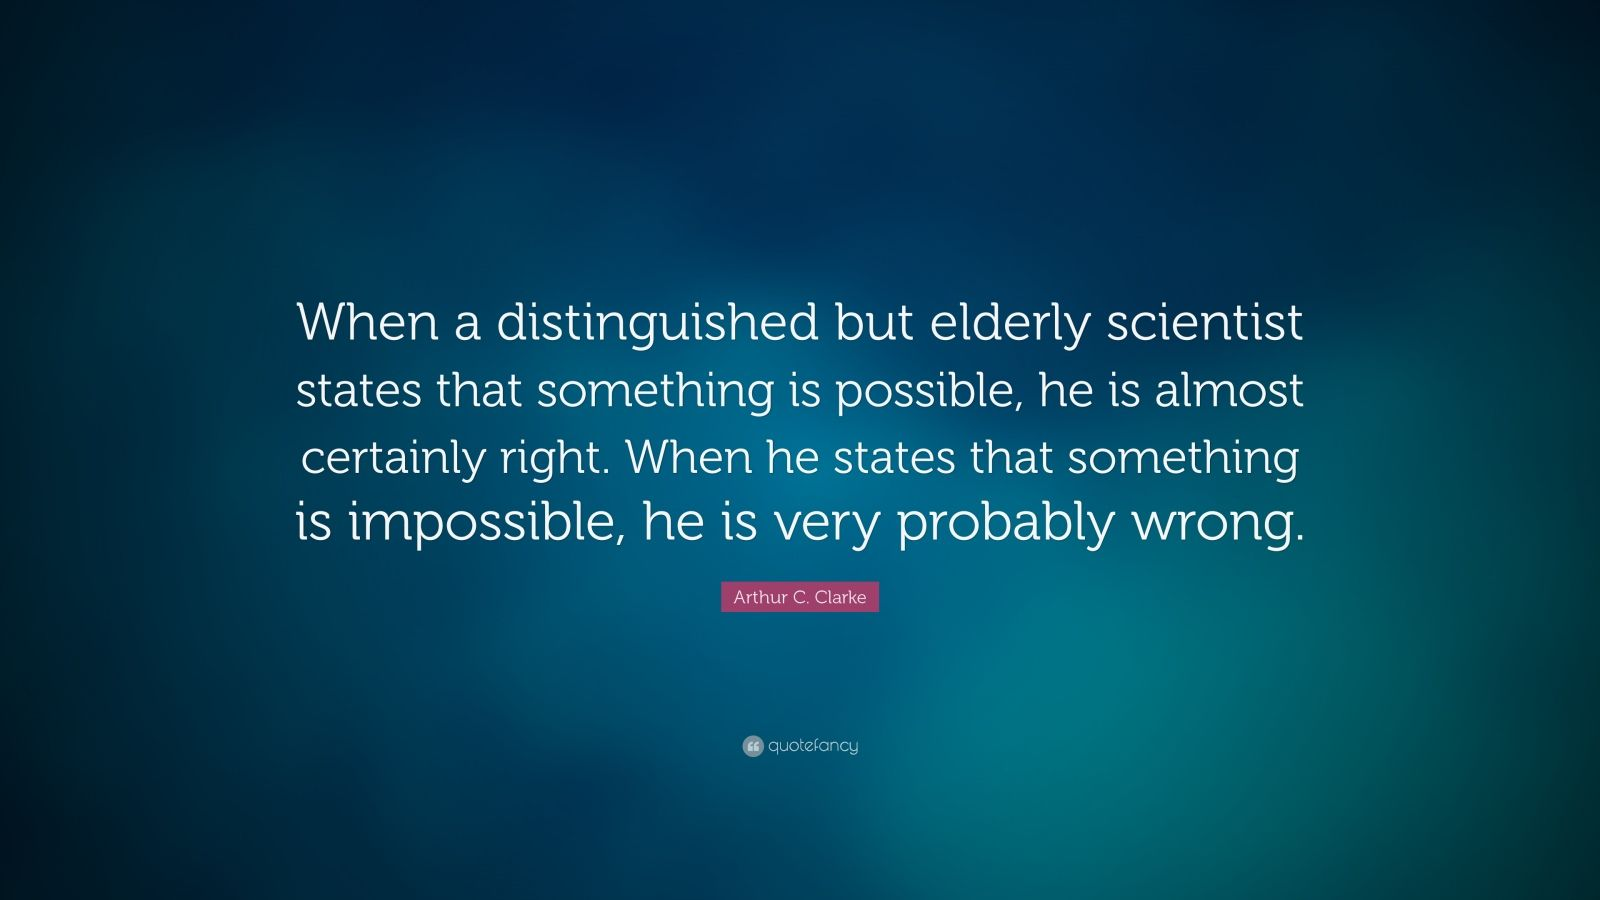 """Arthur C. Clarke Quote: """"When a distinguished but elderly scientist states that something is possible, he is almost certainly right. When he states that something is impossible, he is very probably wrong."""""""